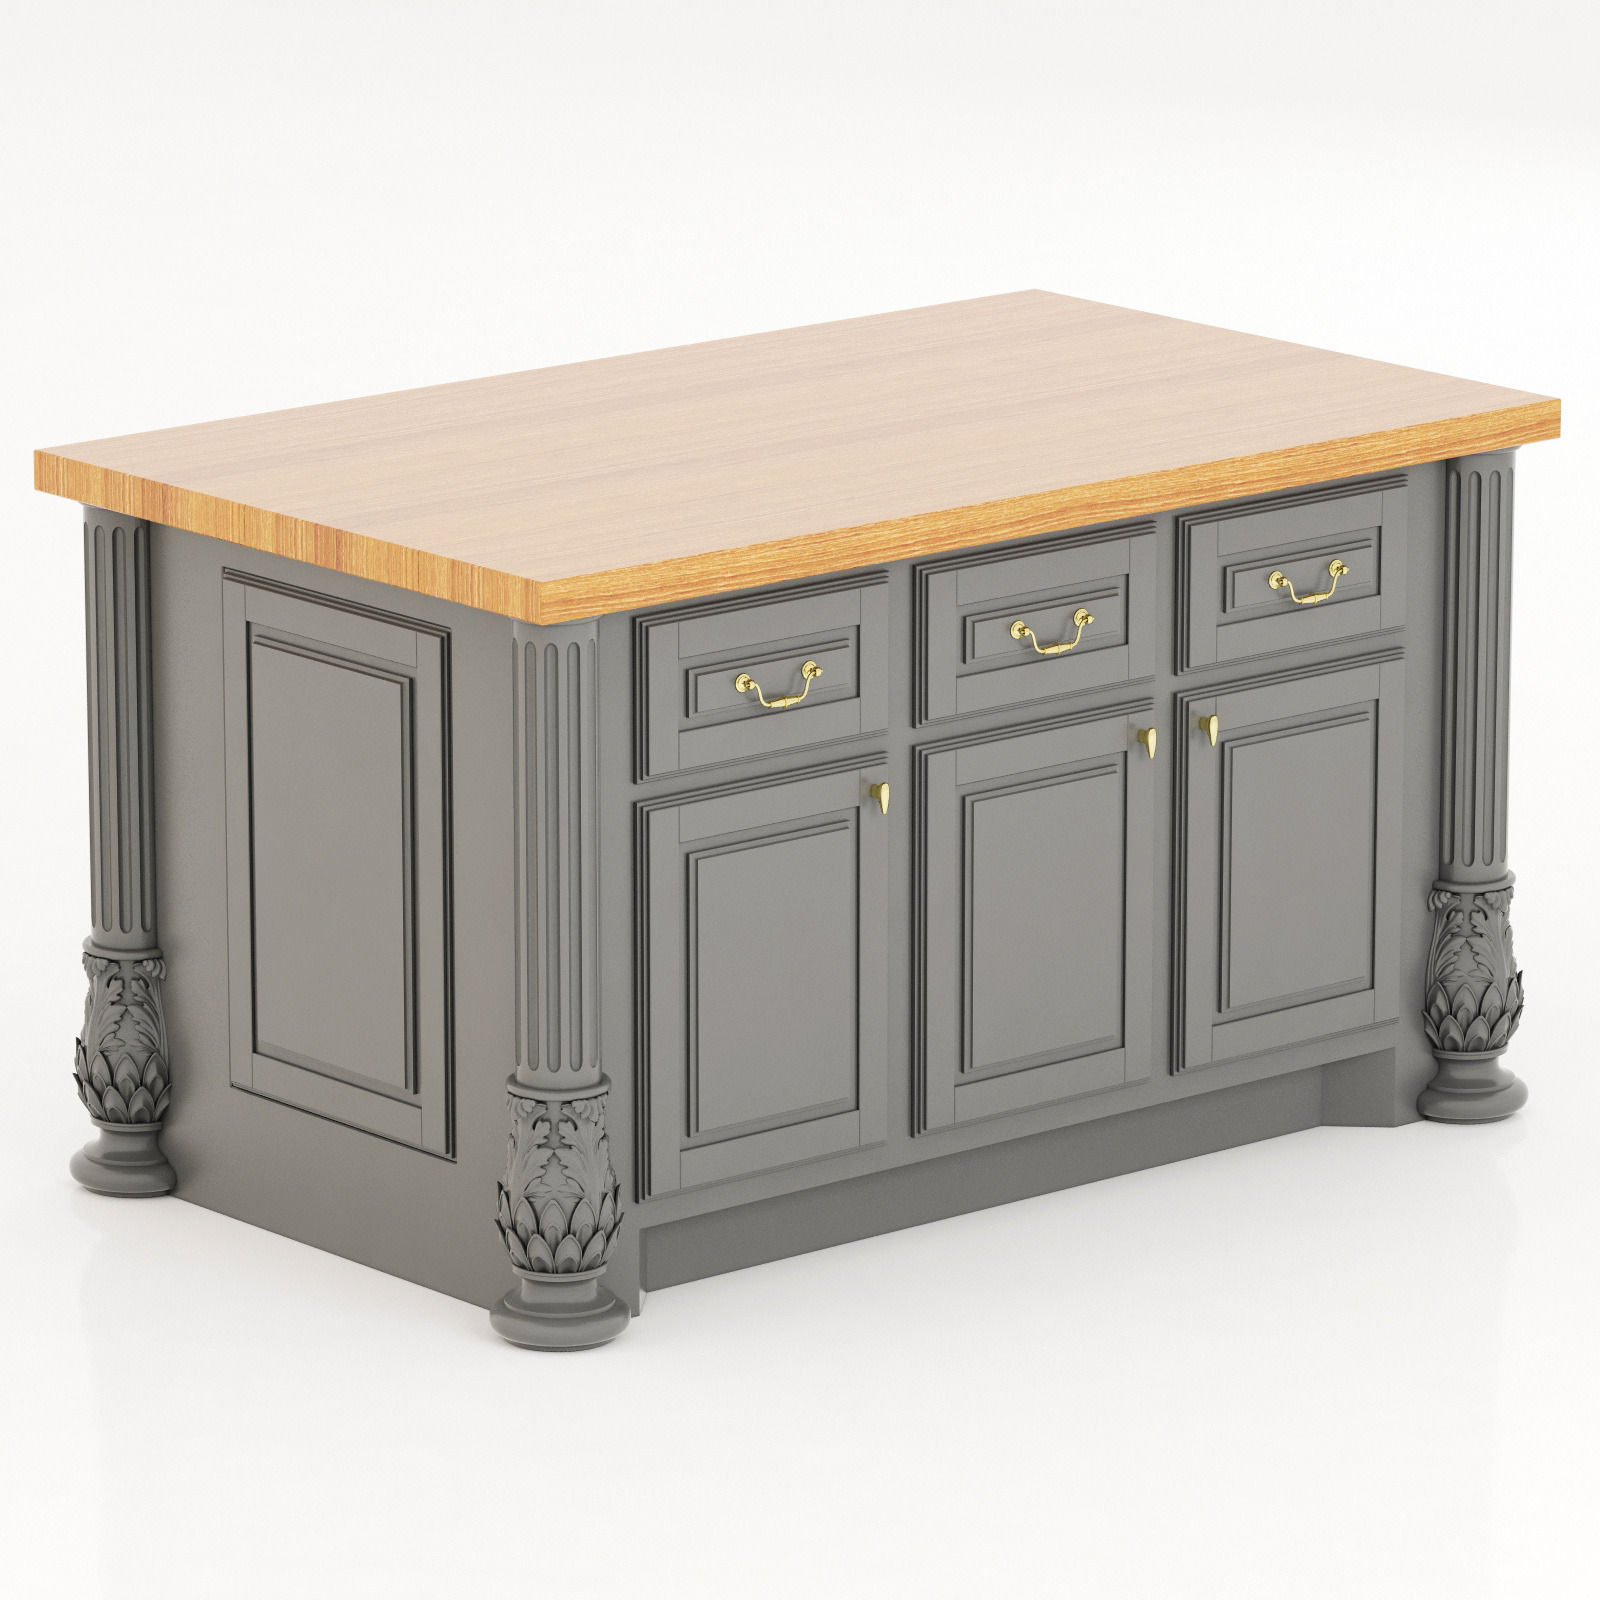 Lyn Design By Hardware Resources Milanese Kitchen Island Model